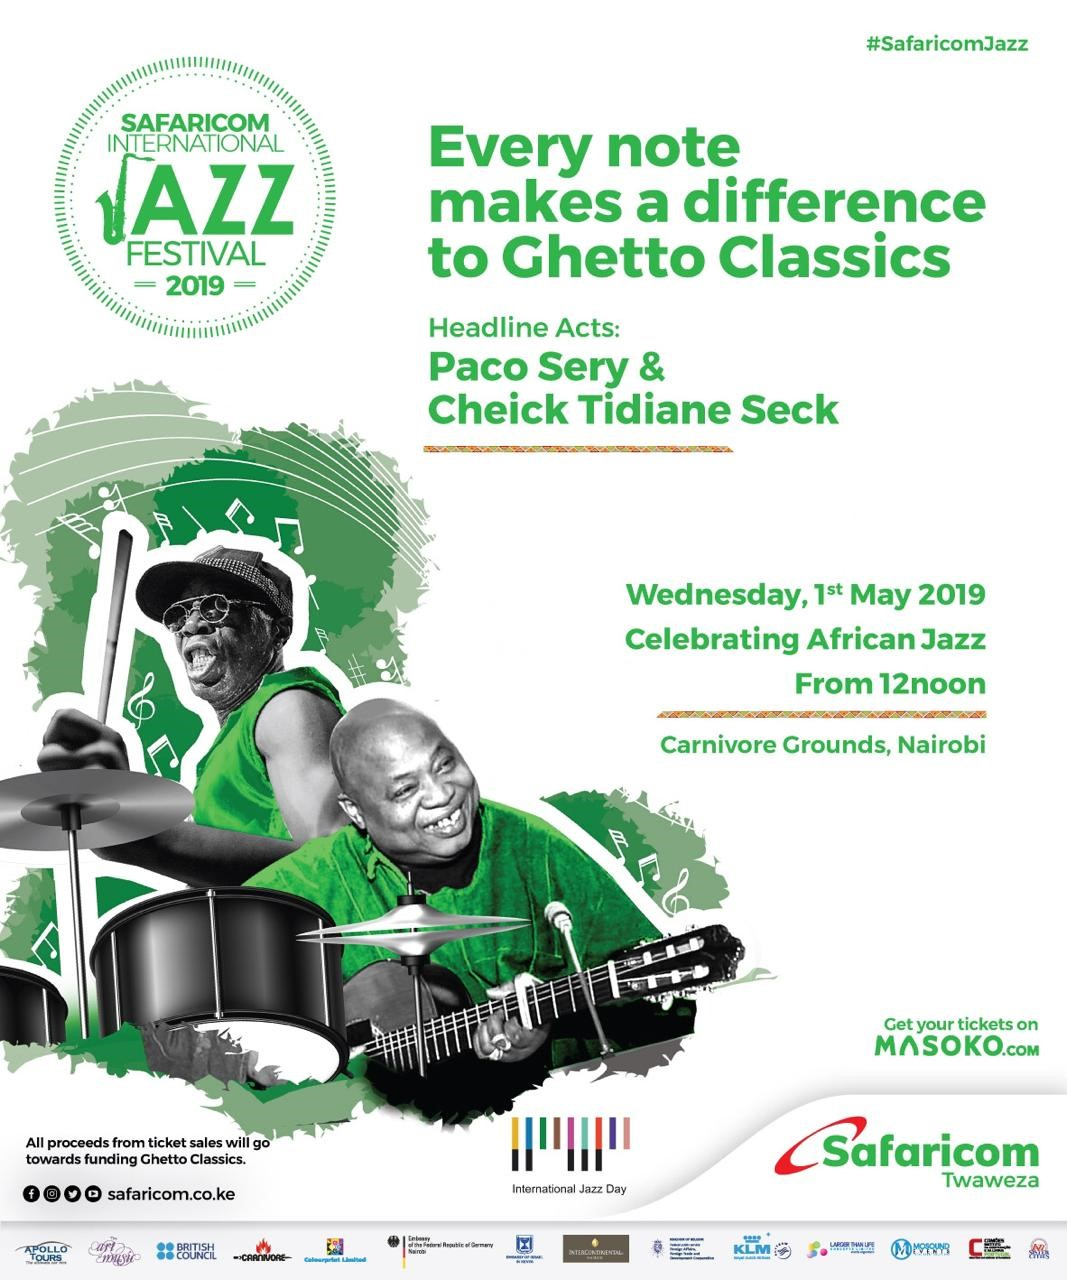 Sfaricom jazz poster 1st may